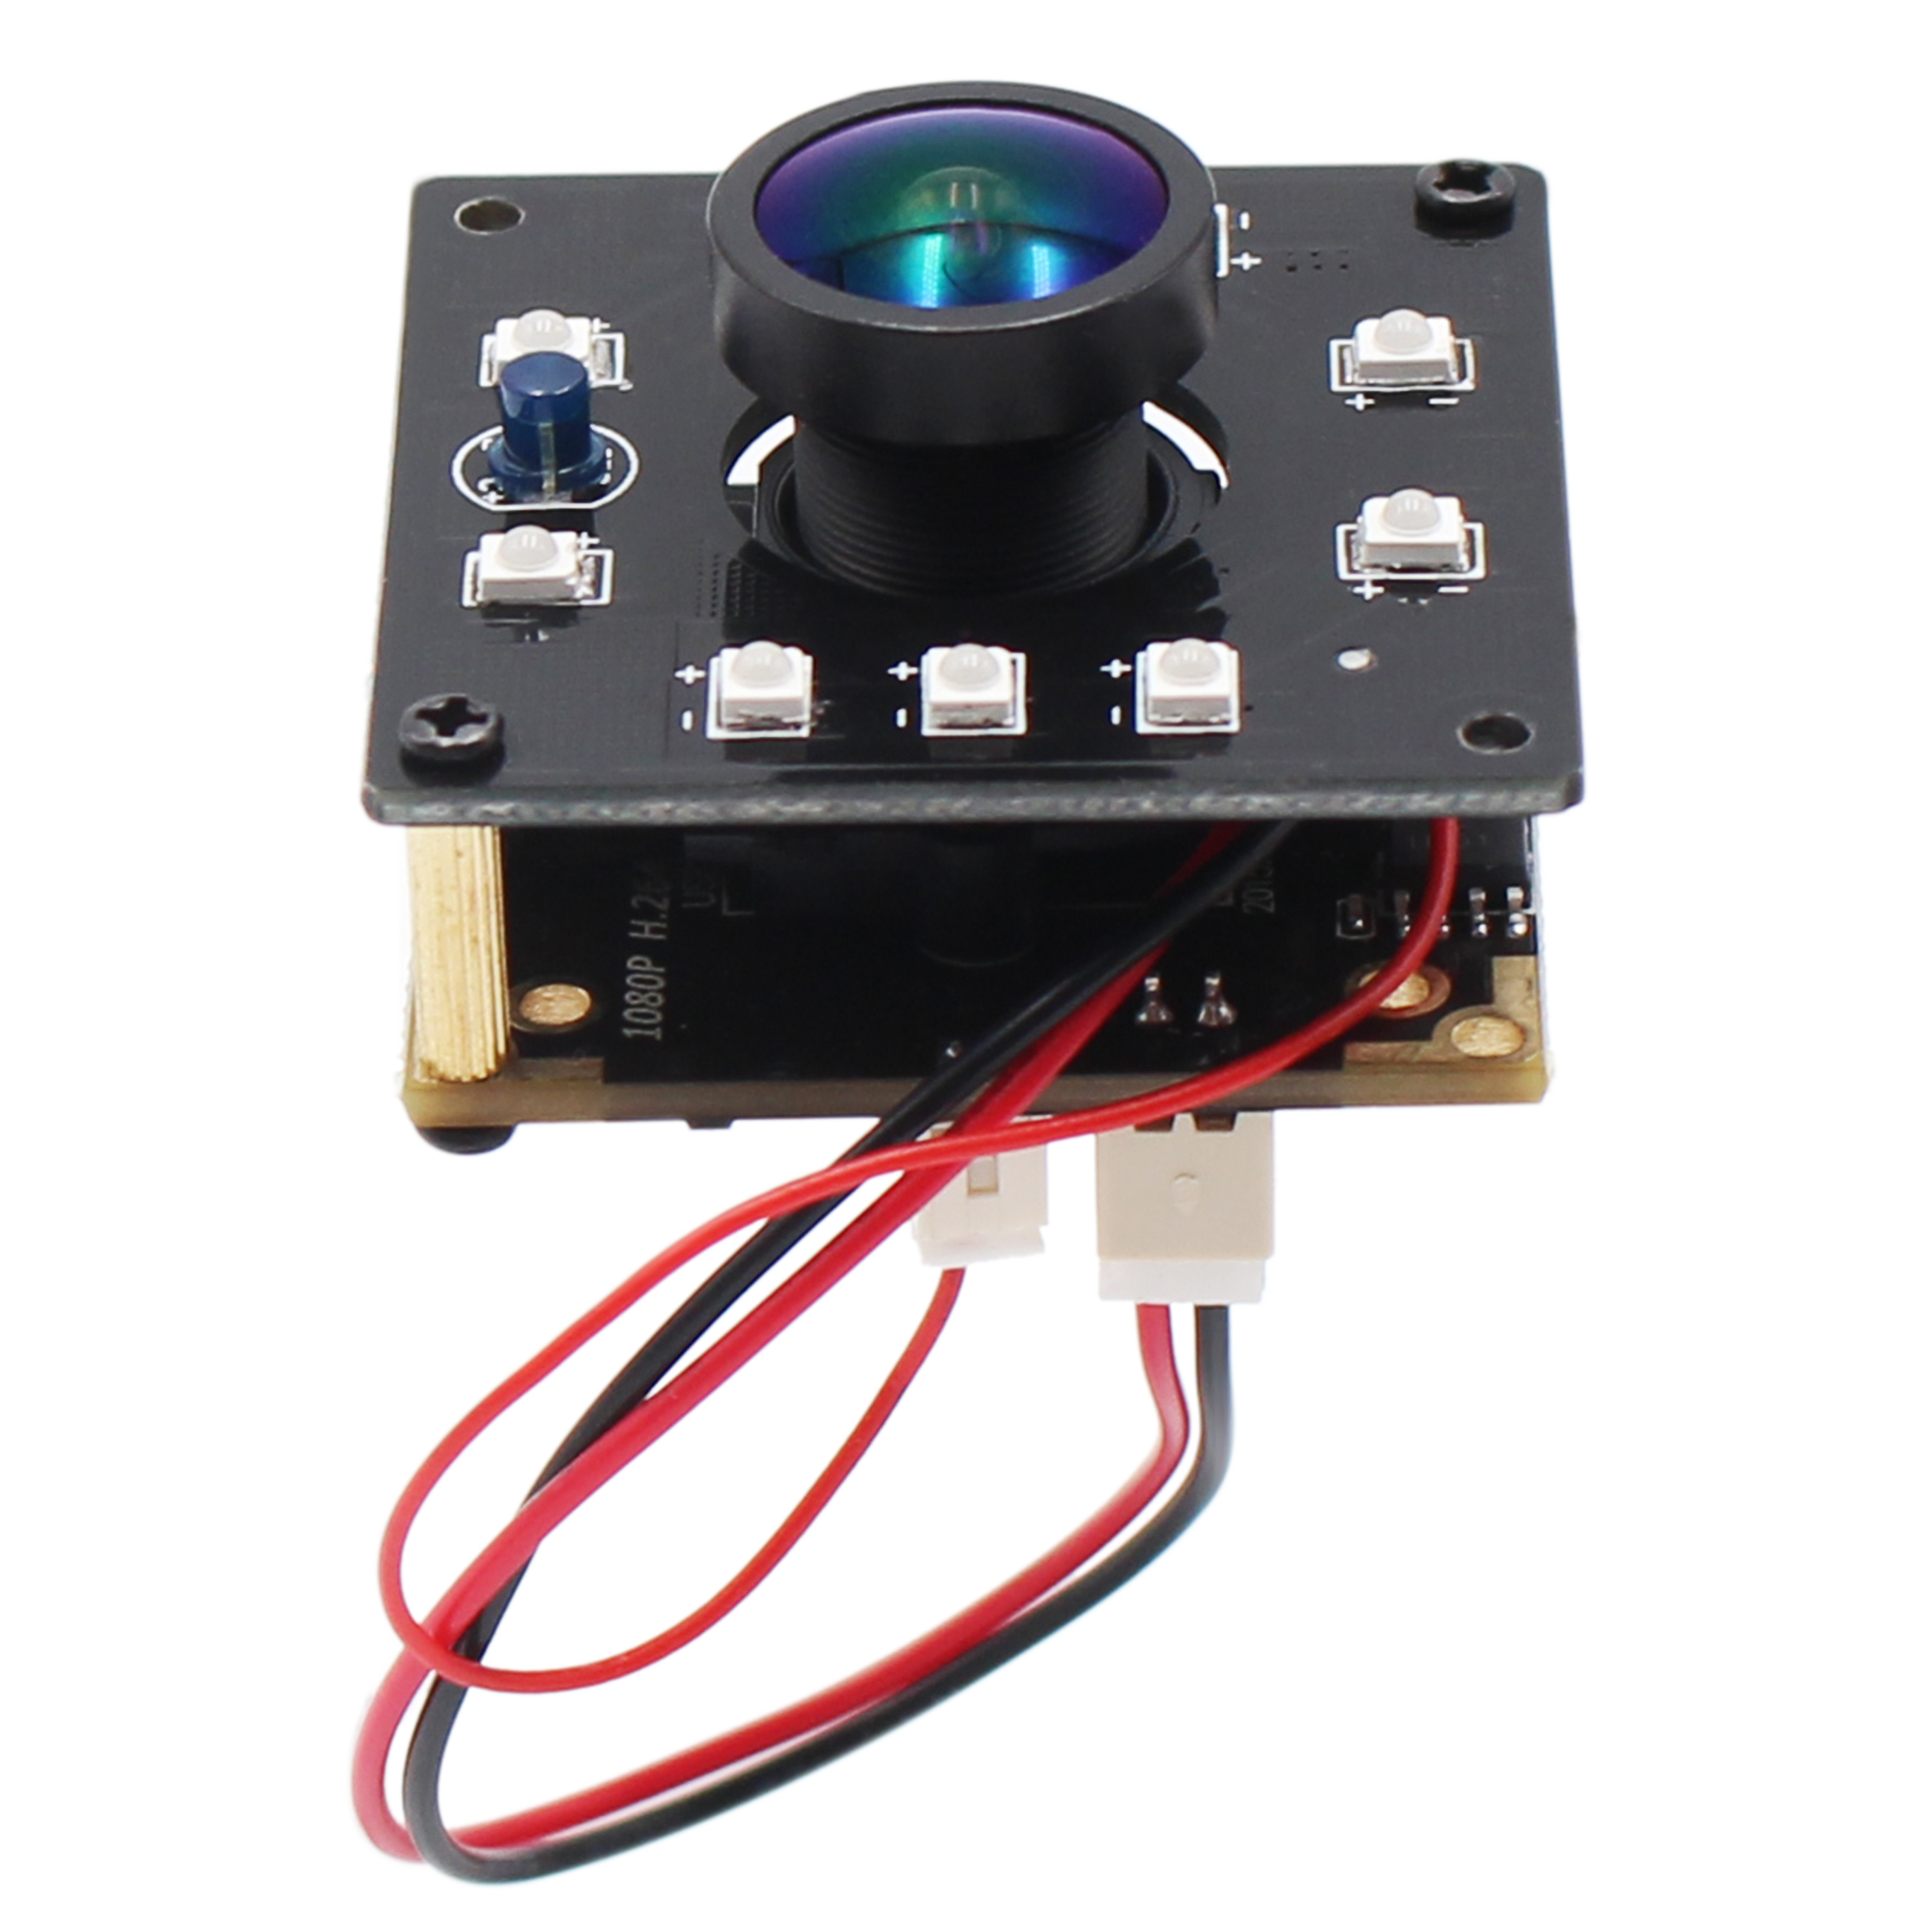 5mp 2592 X 1944 High Speed Aptina MI5100 Wide Angle HD UVC Free driver Infrared Night Vision Usb Cmos Camera Module with ir cut5mp 2592 X 1944 High Speed Aptina MI5100 Wide Angle HD UVC Free driver Infrared Night Vision Usb Cmos Camera Module with ir cut